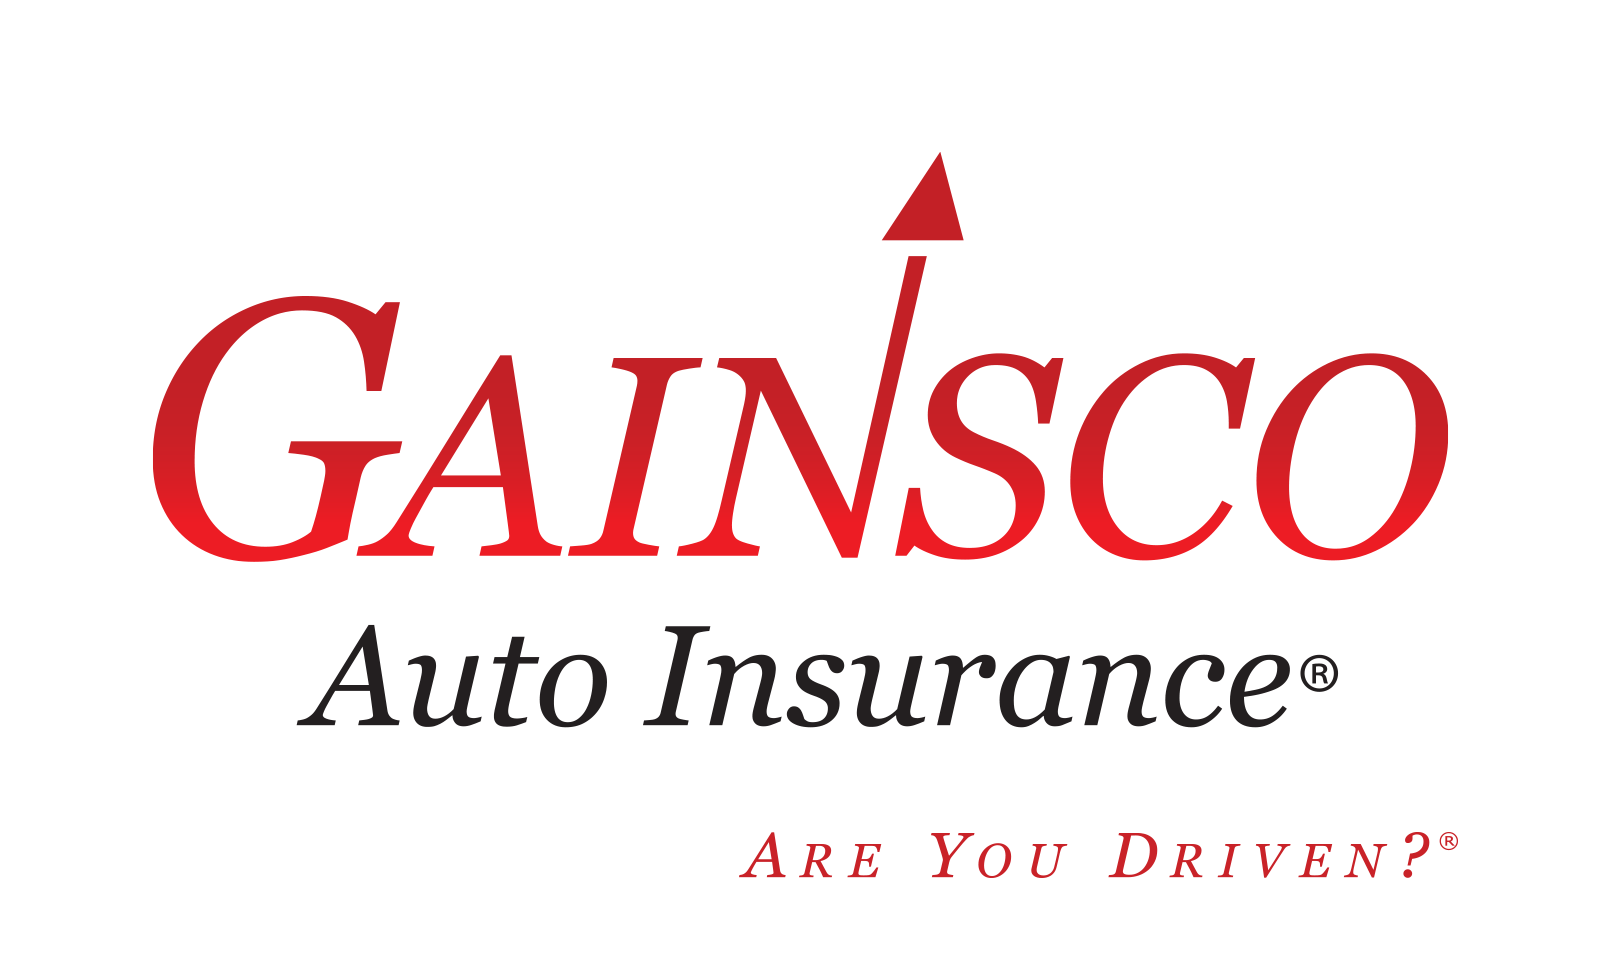 Gainsco - Haven't had insurance in a while? Spotty record? We can still help with the Gainsco auto program!